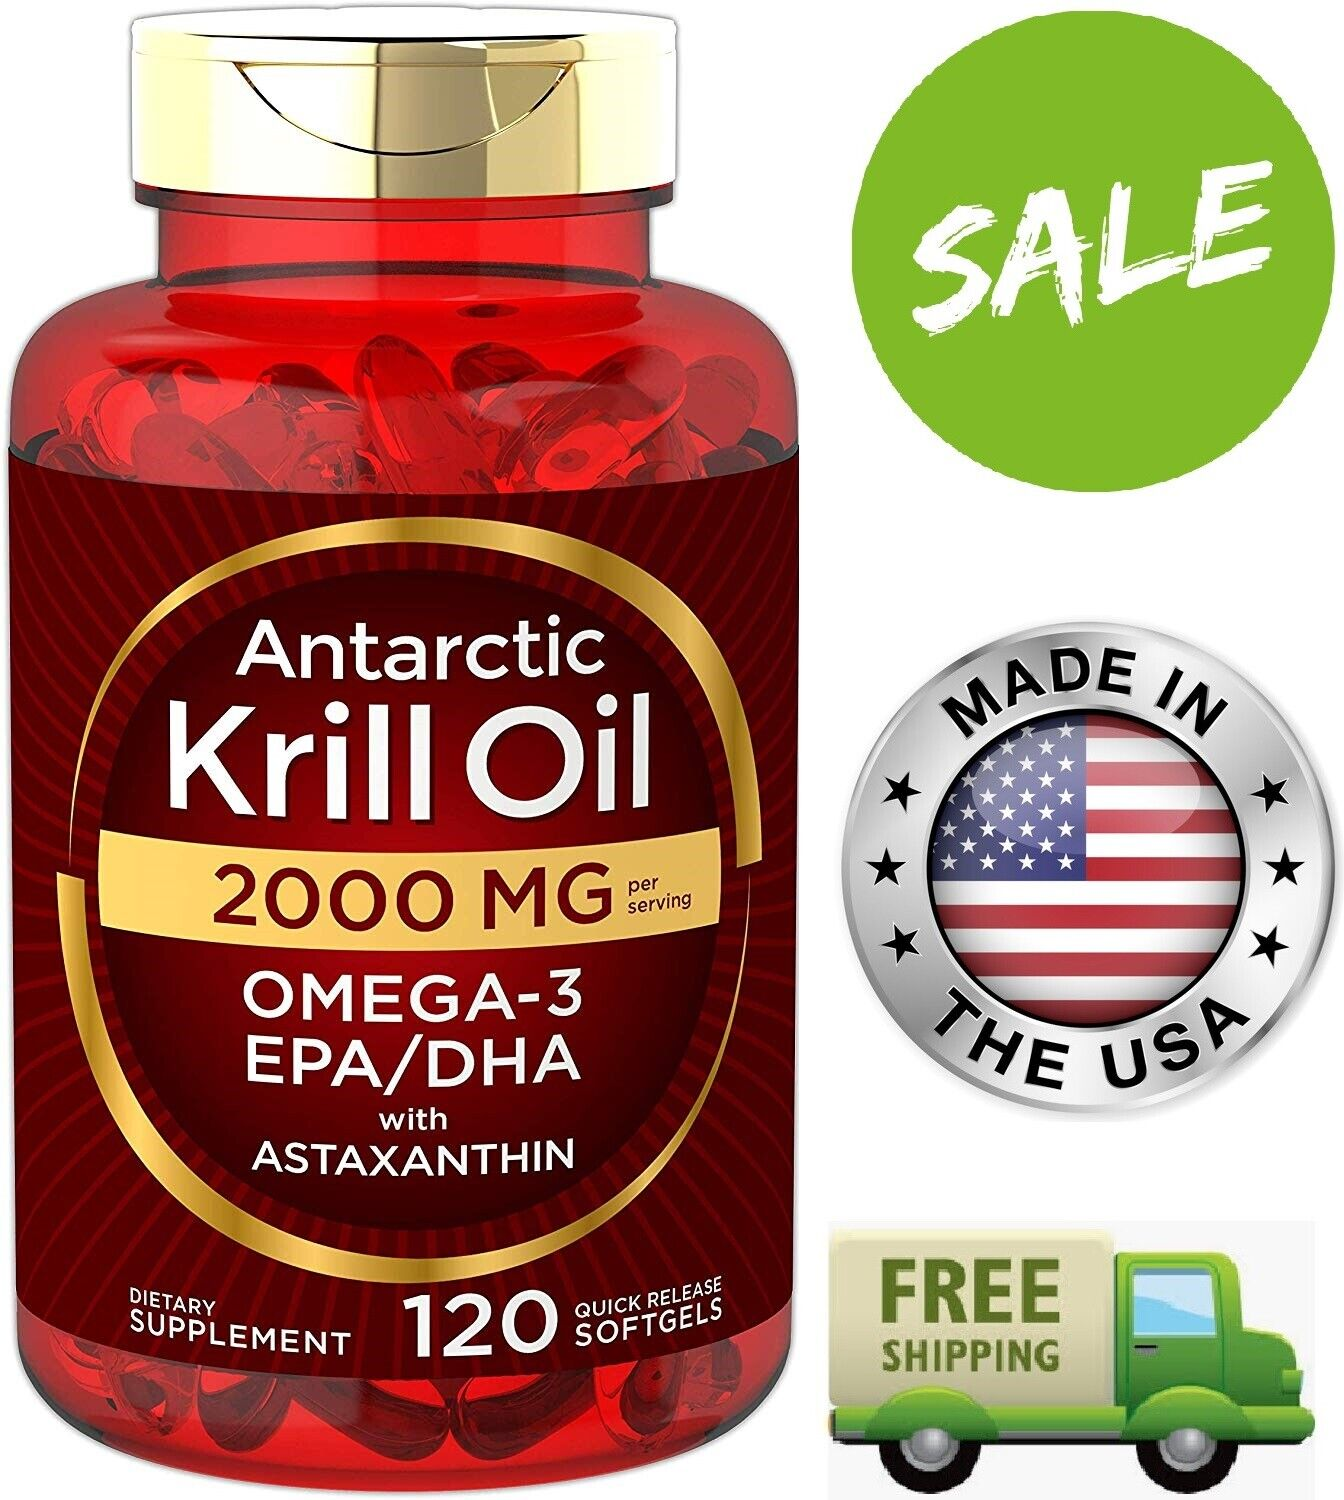 ANTARCTIC KRILL OIL 2000 mg Omega-3 EPA DHA Astaxanthin Supplement 120 Softgels